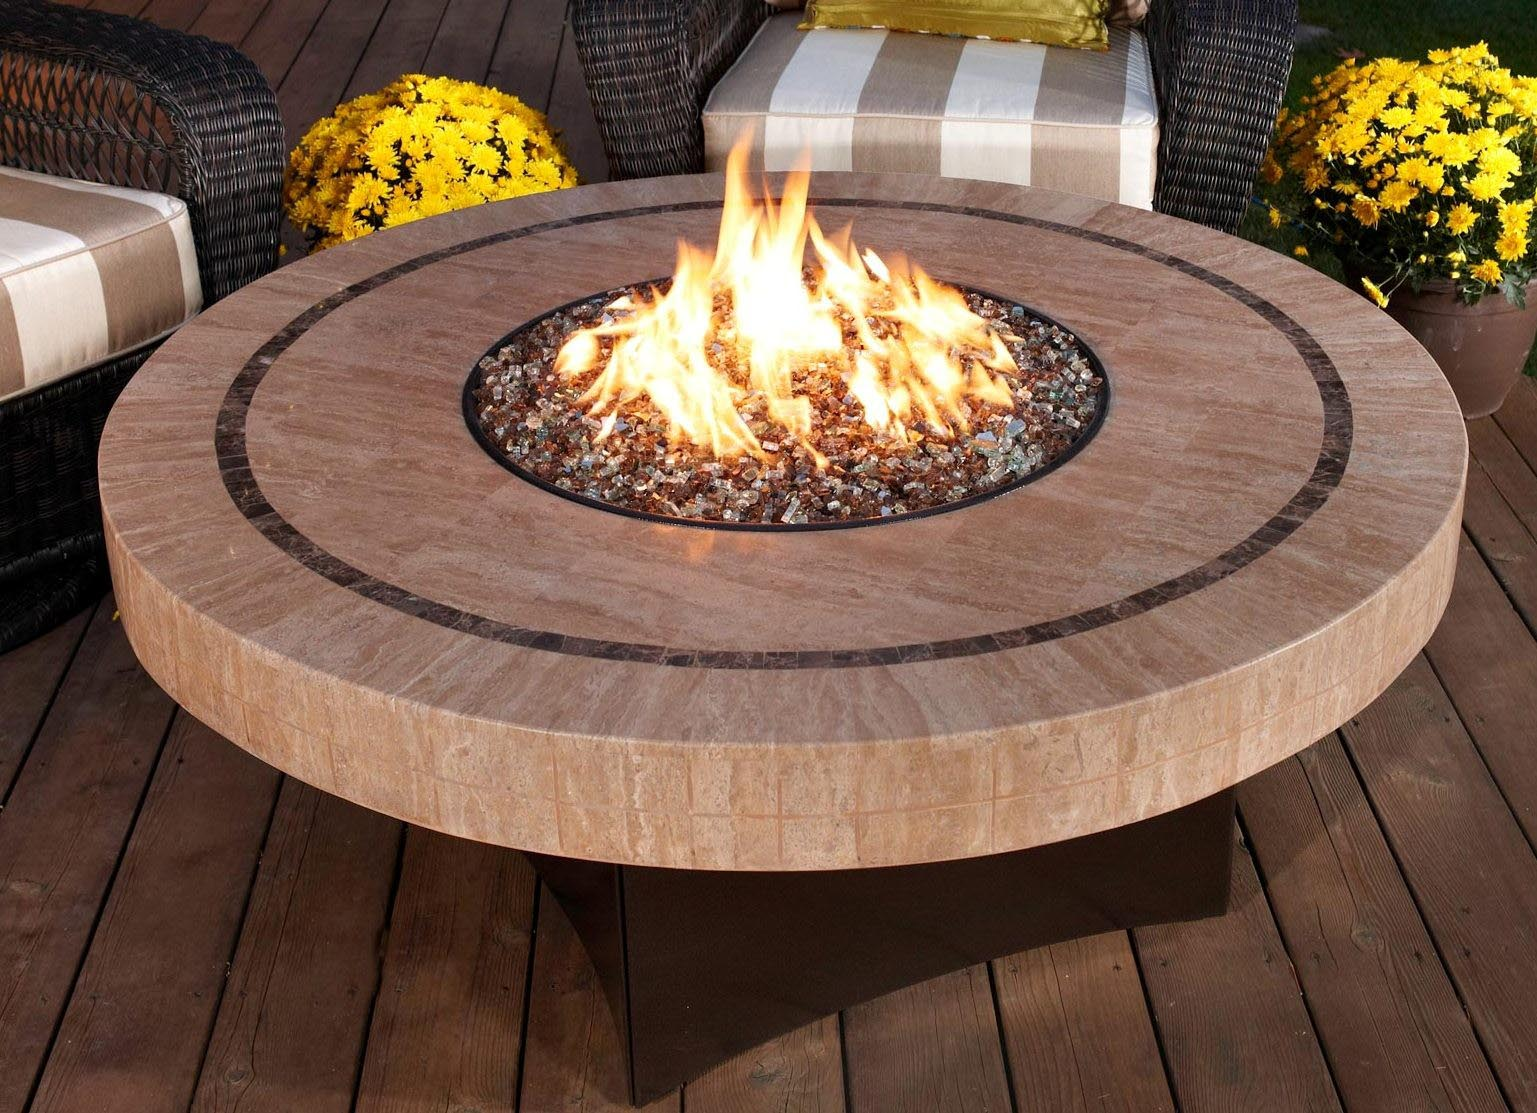 Modern outdoor fire pit table fire pit design ideas for Outdoor modern fire pit